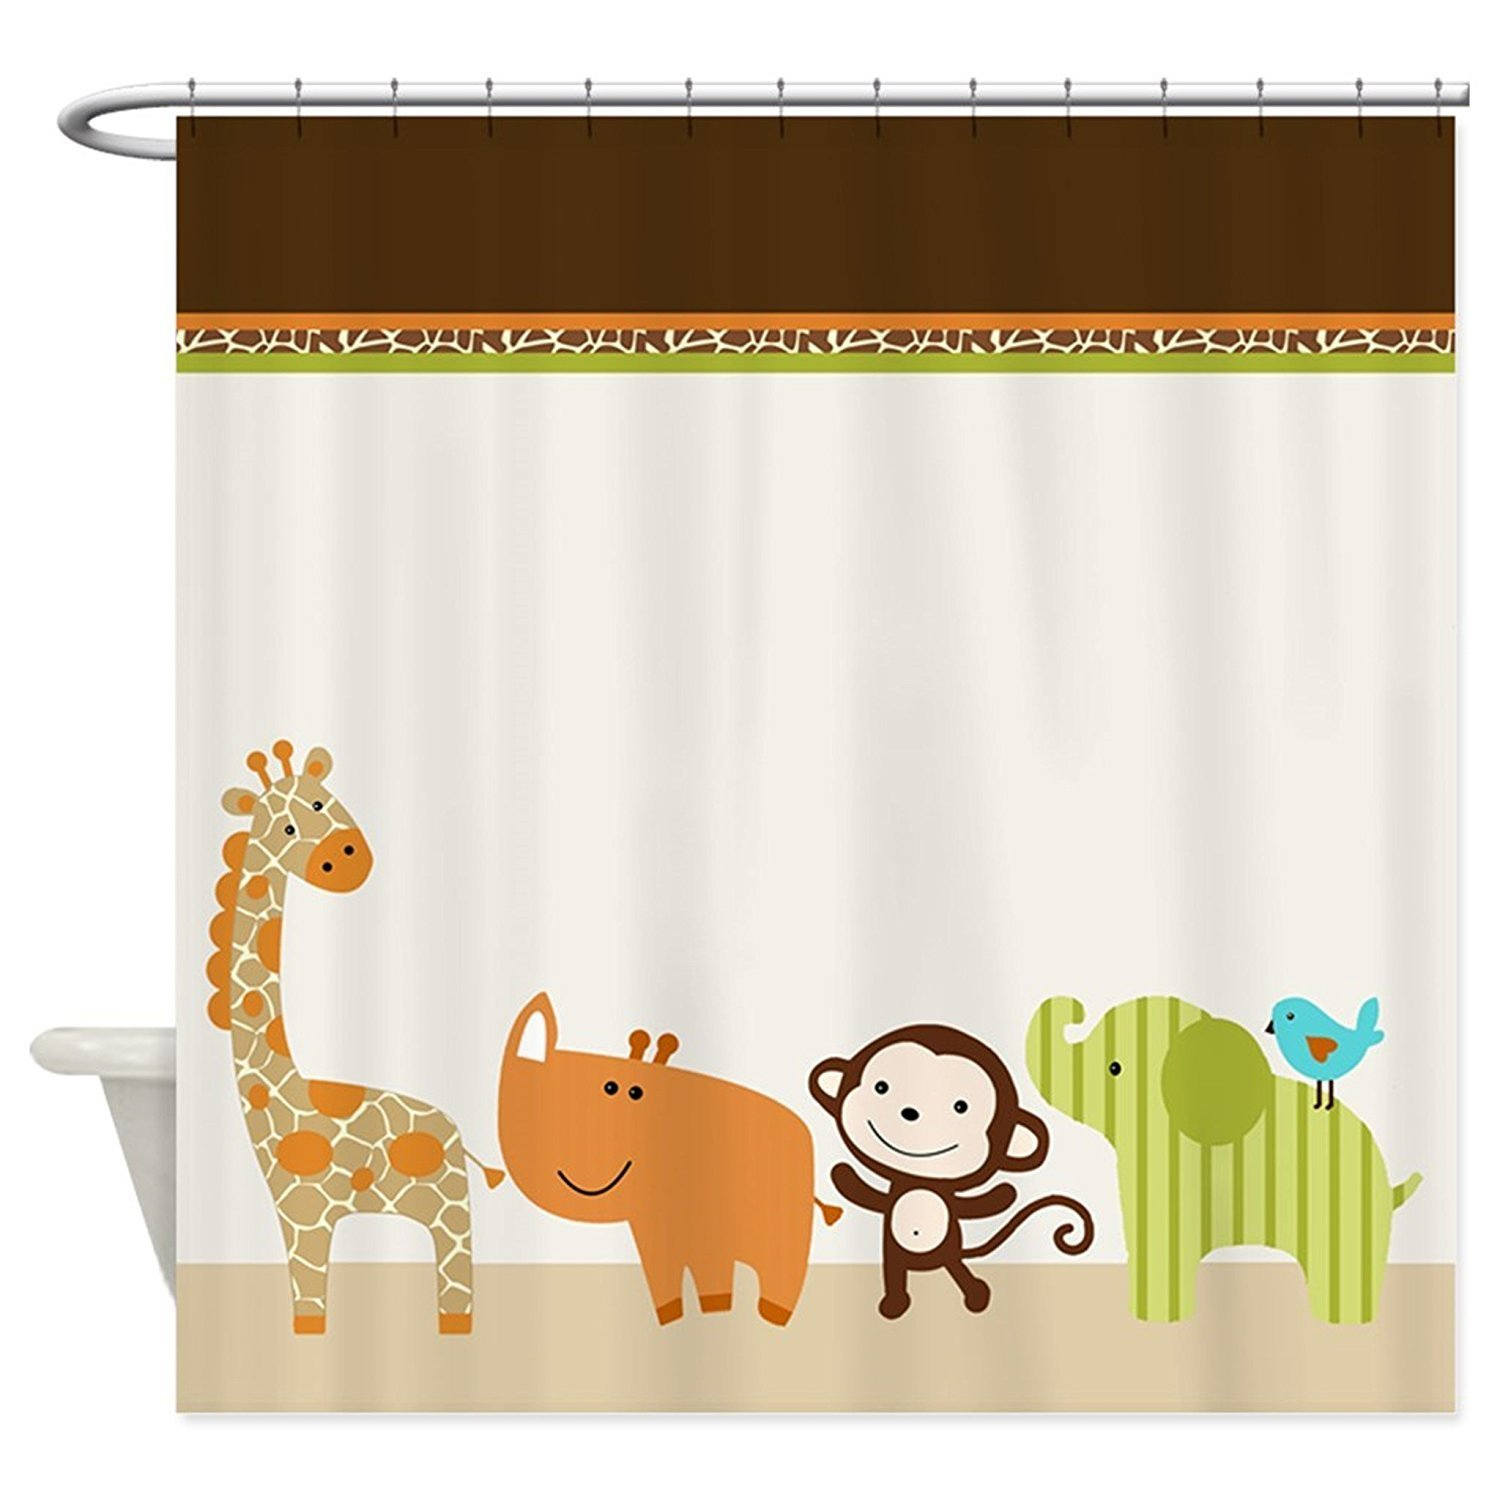 Curtain clipart coloring Waterproof Cute Cute Curtains( Kids